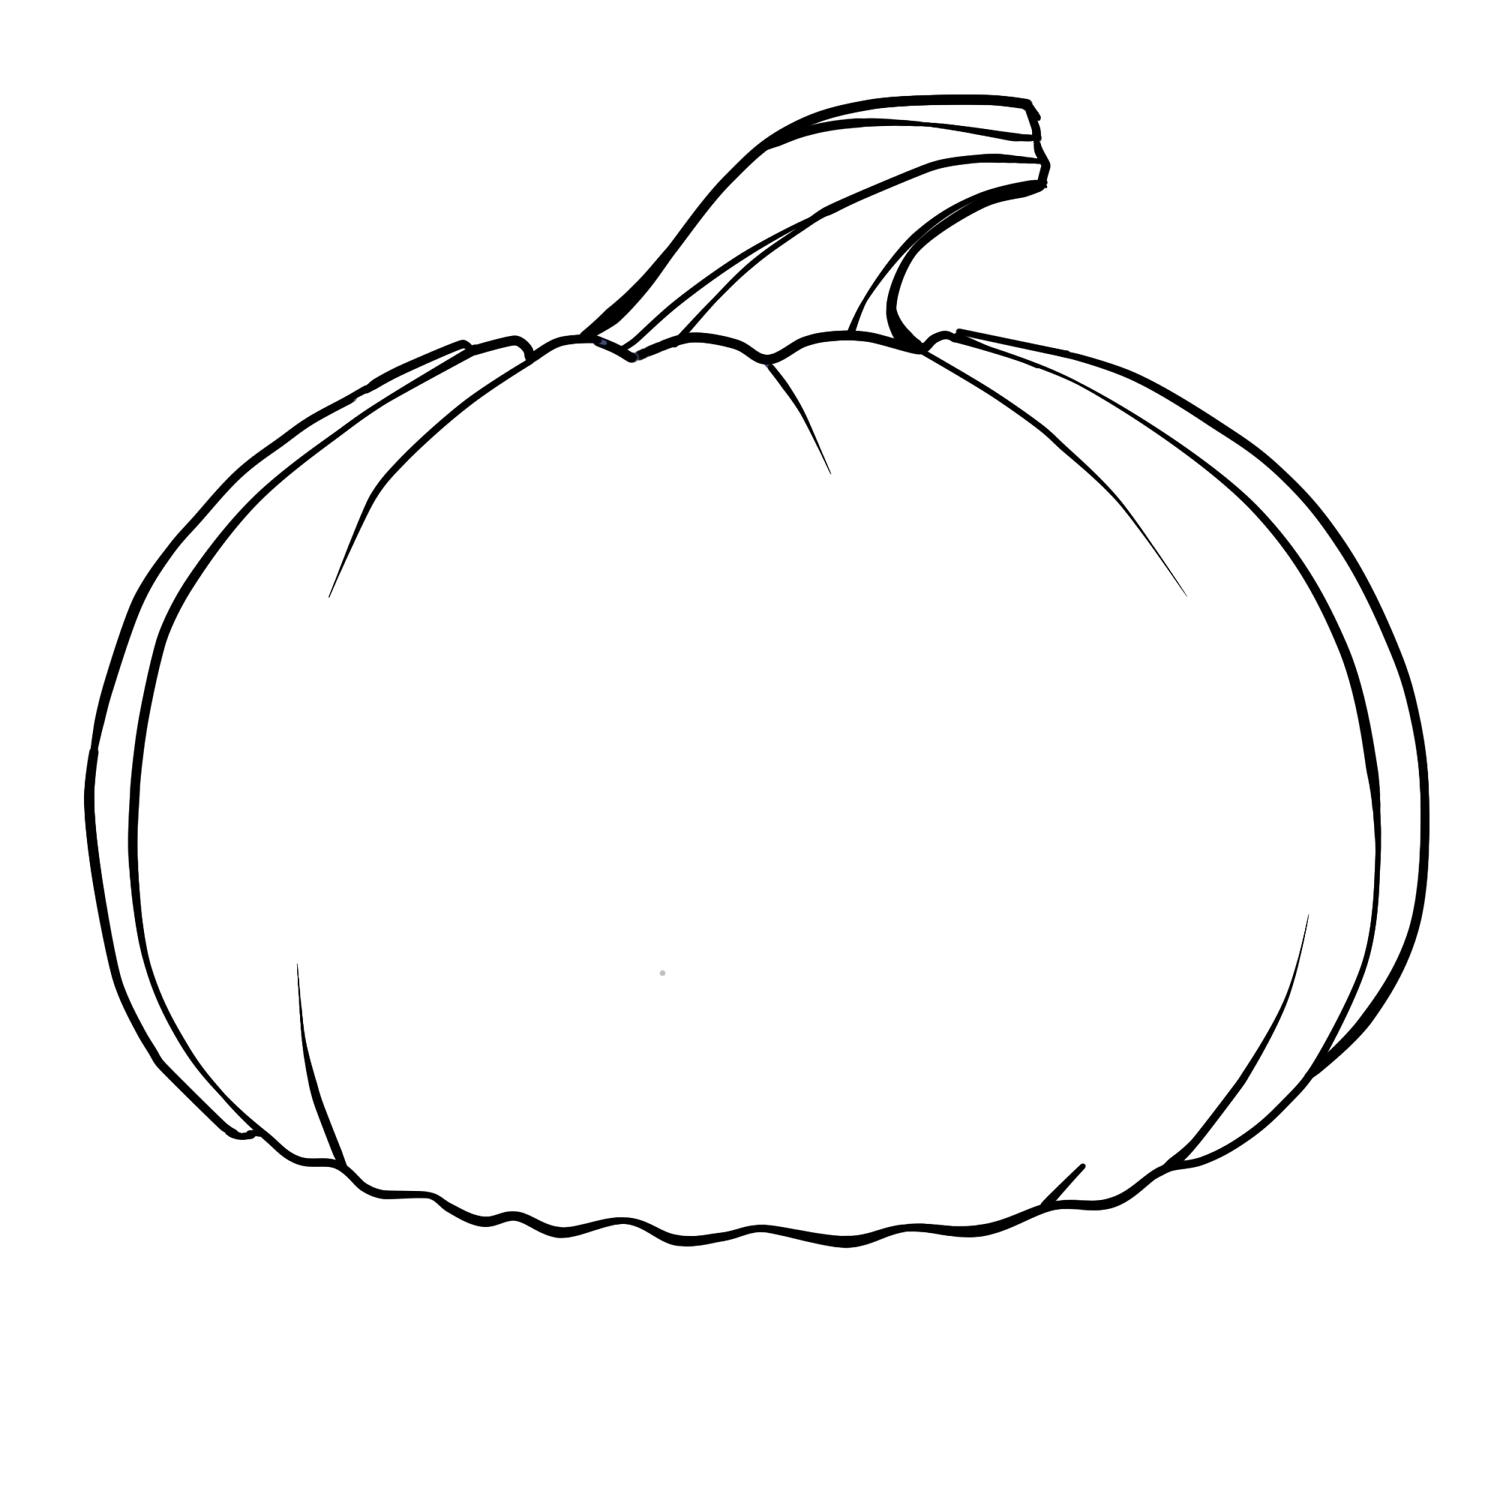 image relating to Printable Pumpkin Pictures called Free of charge Printable Pumpkin Coloring Web pages For Youngsters